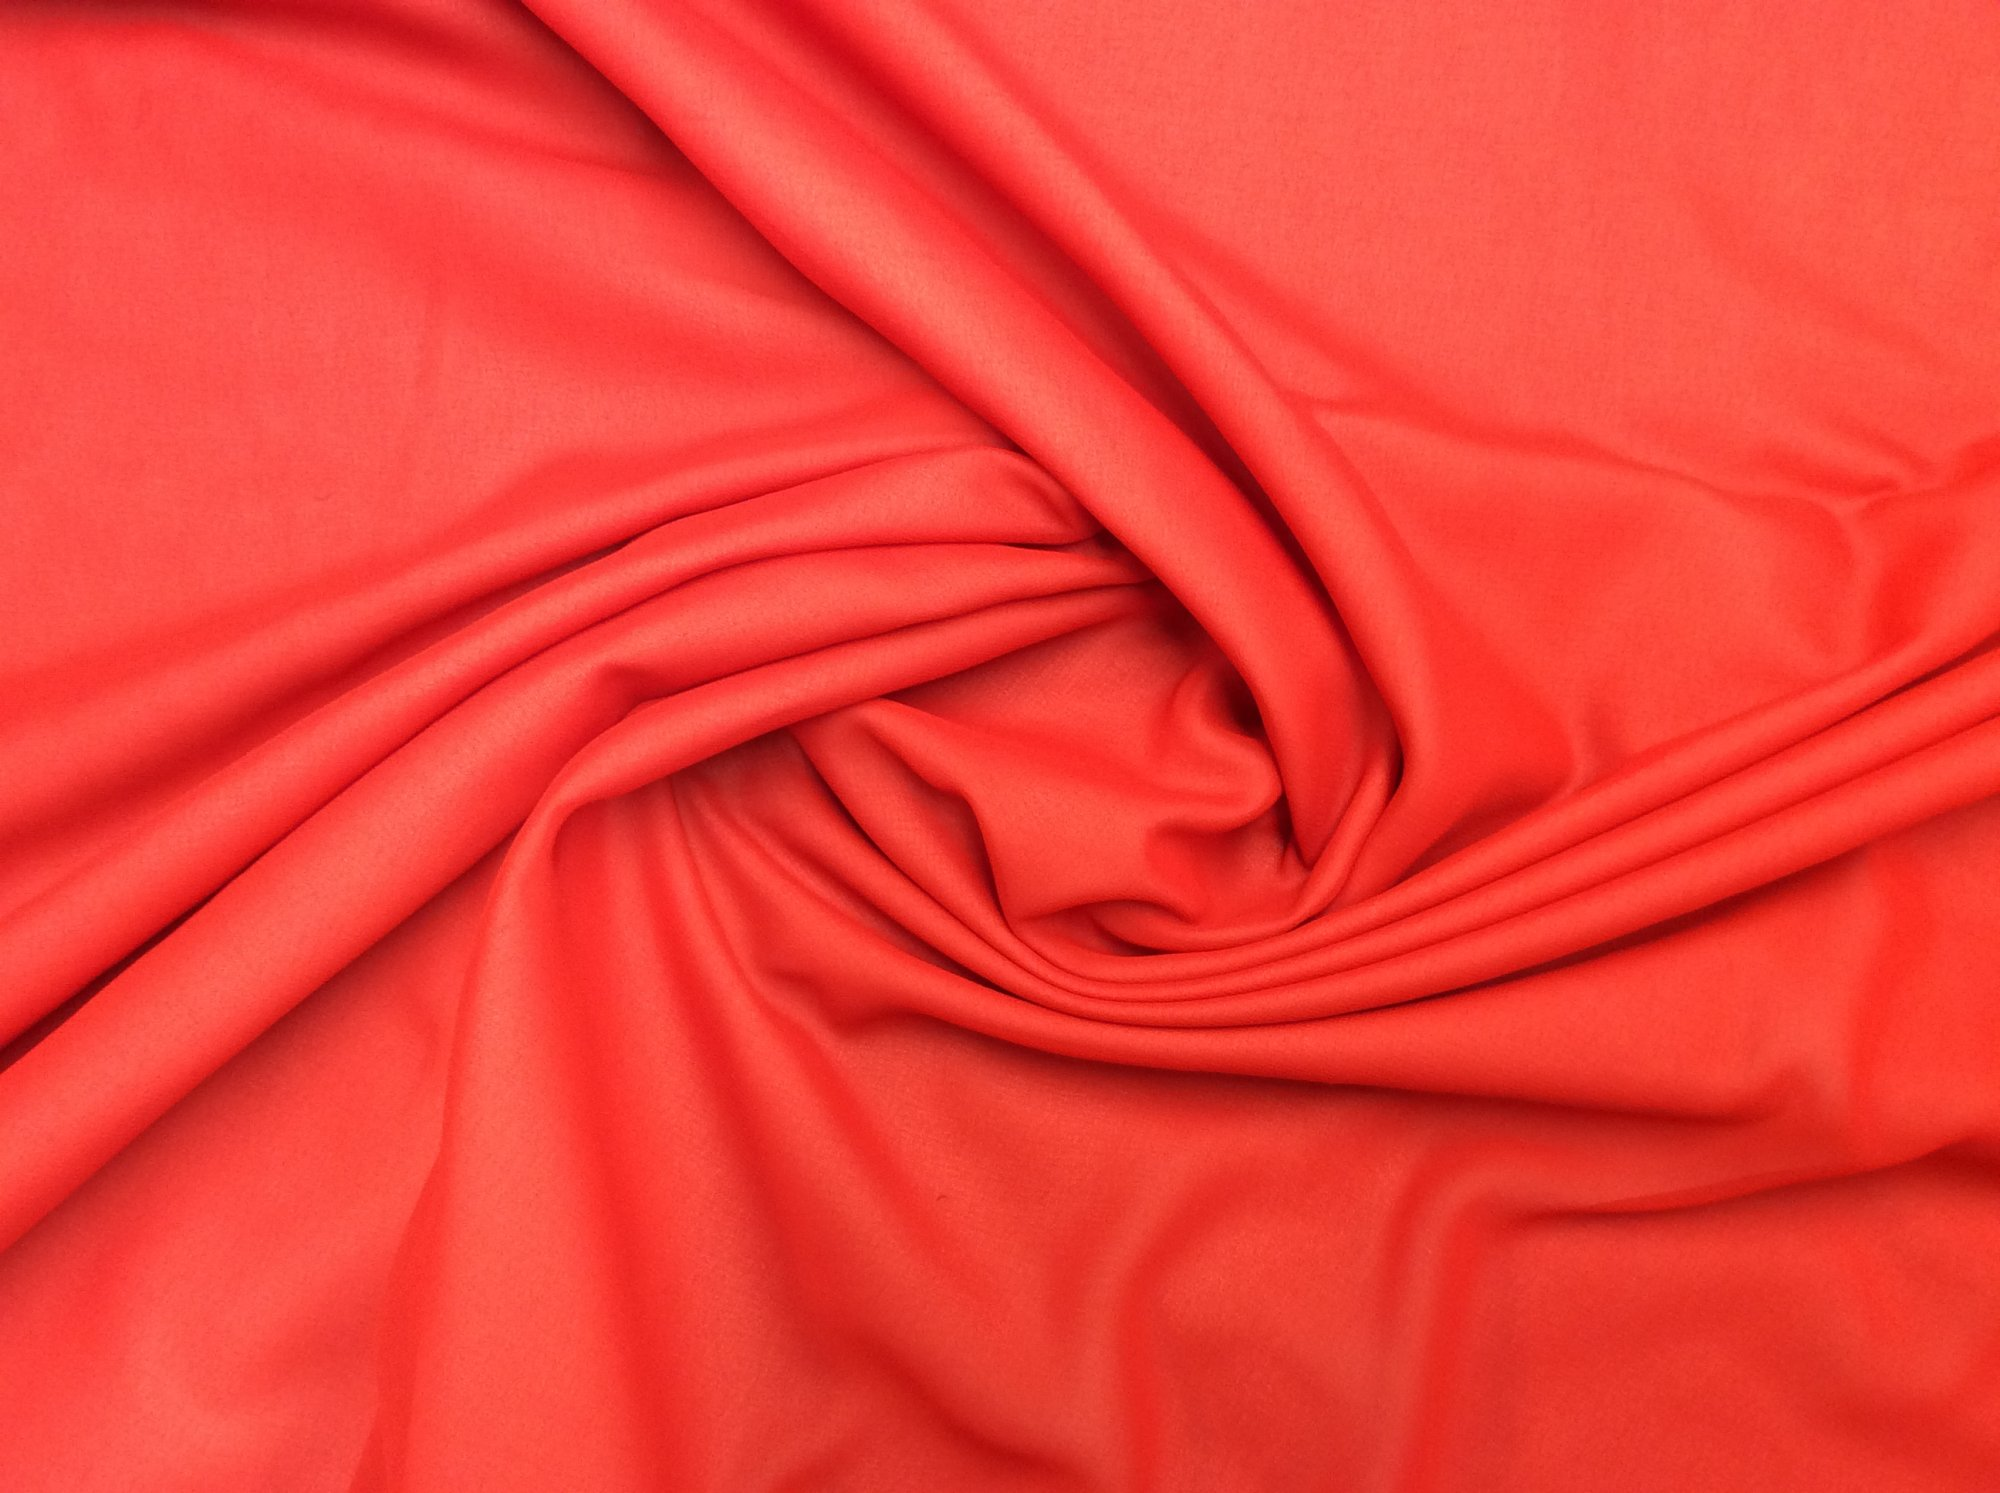 Red Polyester Chiffon Apparel Sheer Dress Fabric FM95